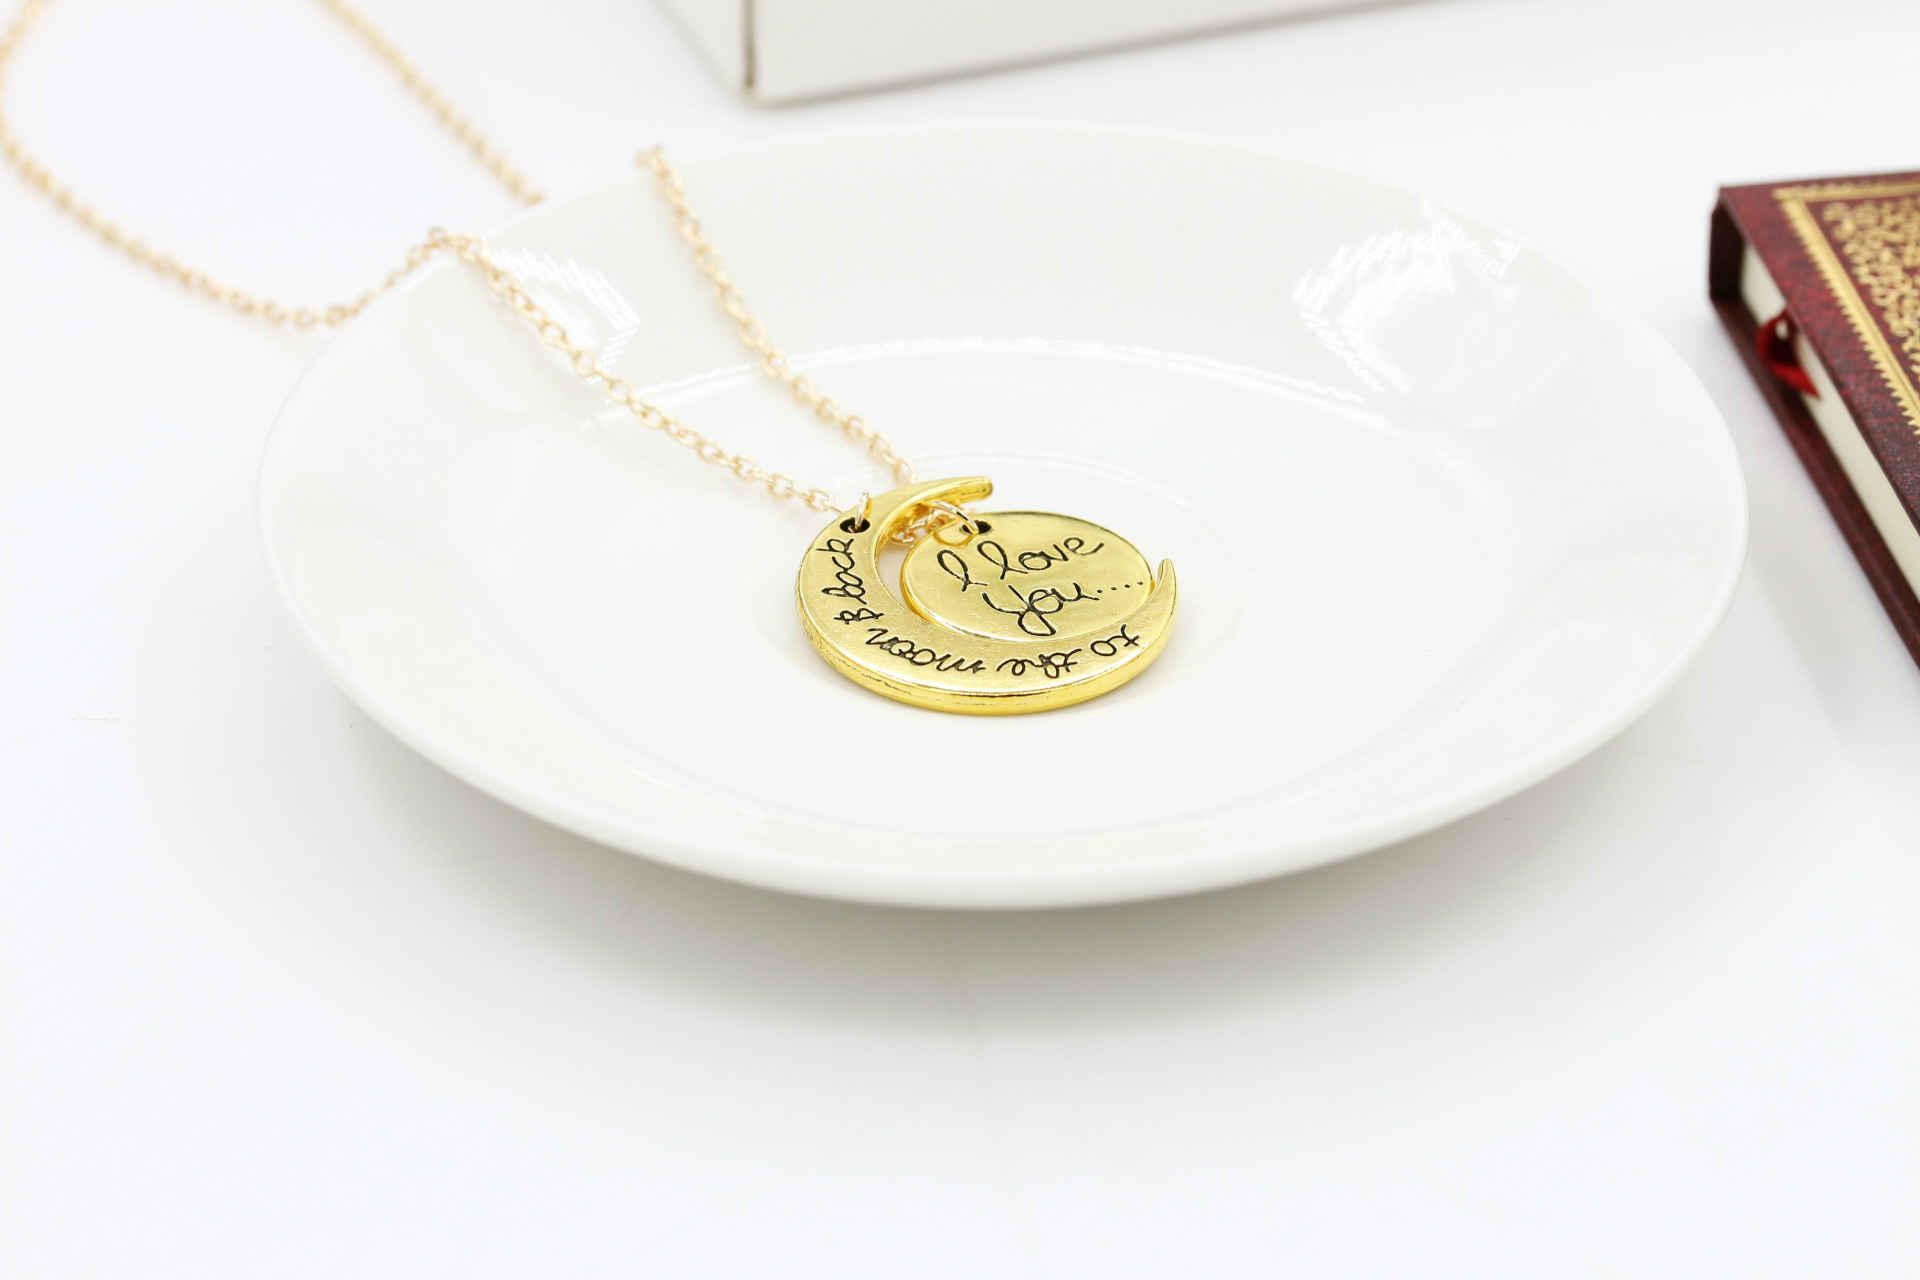 Wholesale I Love You Necklace To The Moon And Back Silver Kalung Style Beatylove Color Silvergold Length Approx45 5cm 177 196 Because Of Size Measurements Are Handmade So There May Be 1 3cm Error